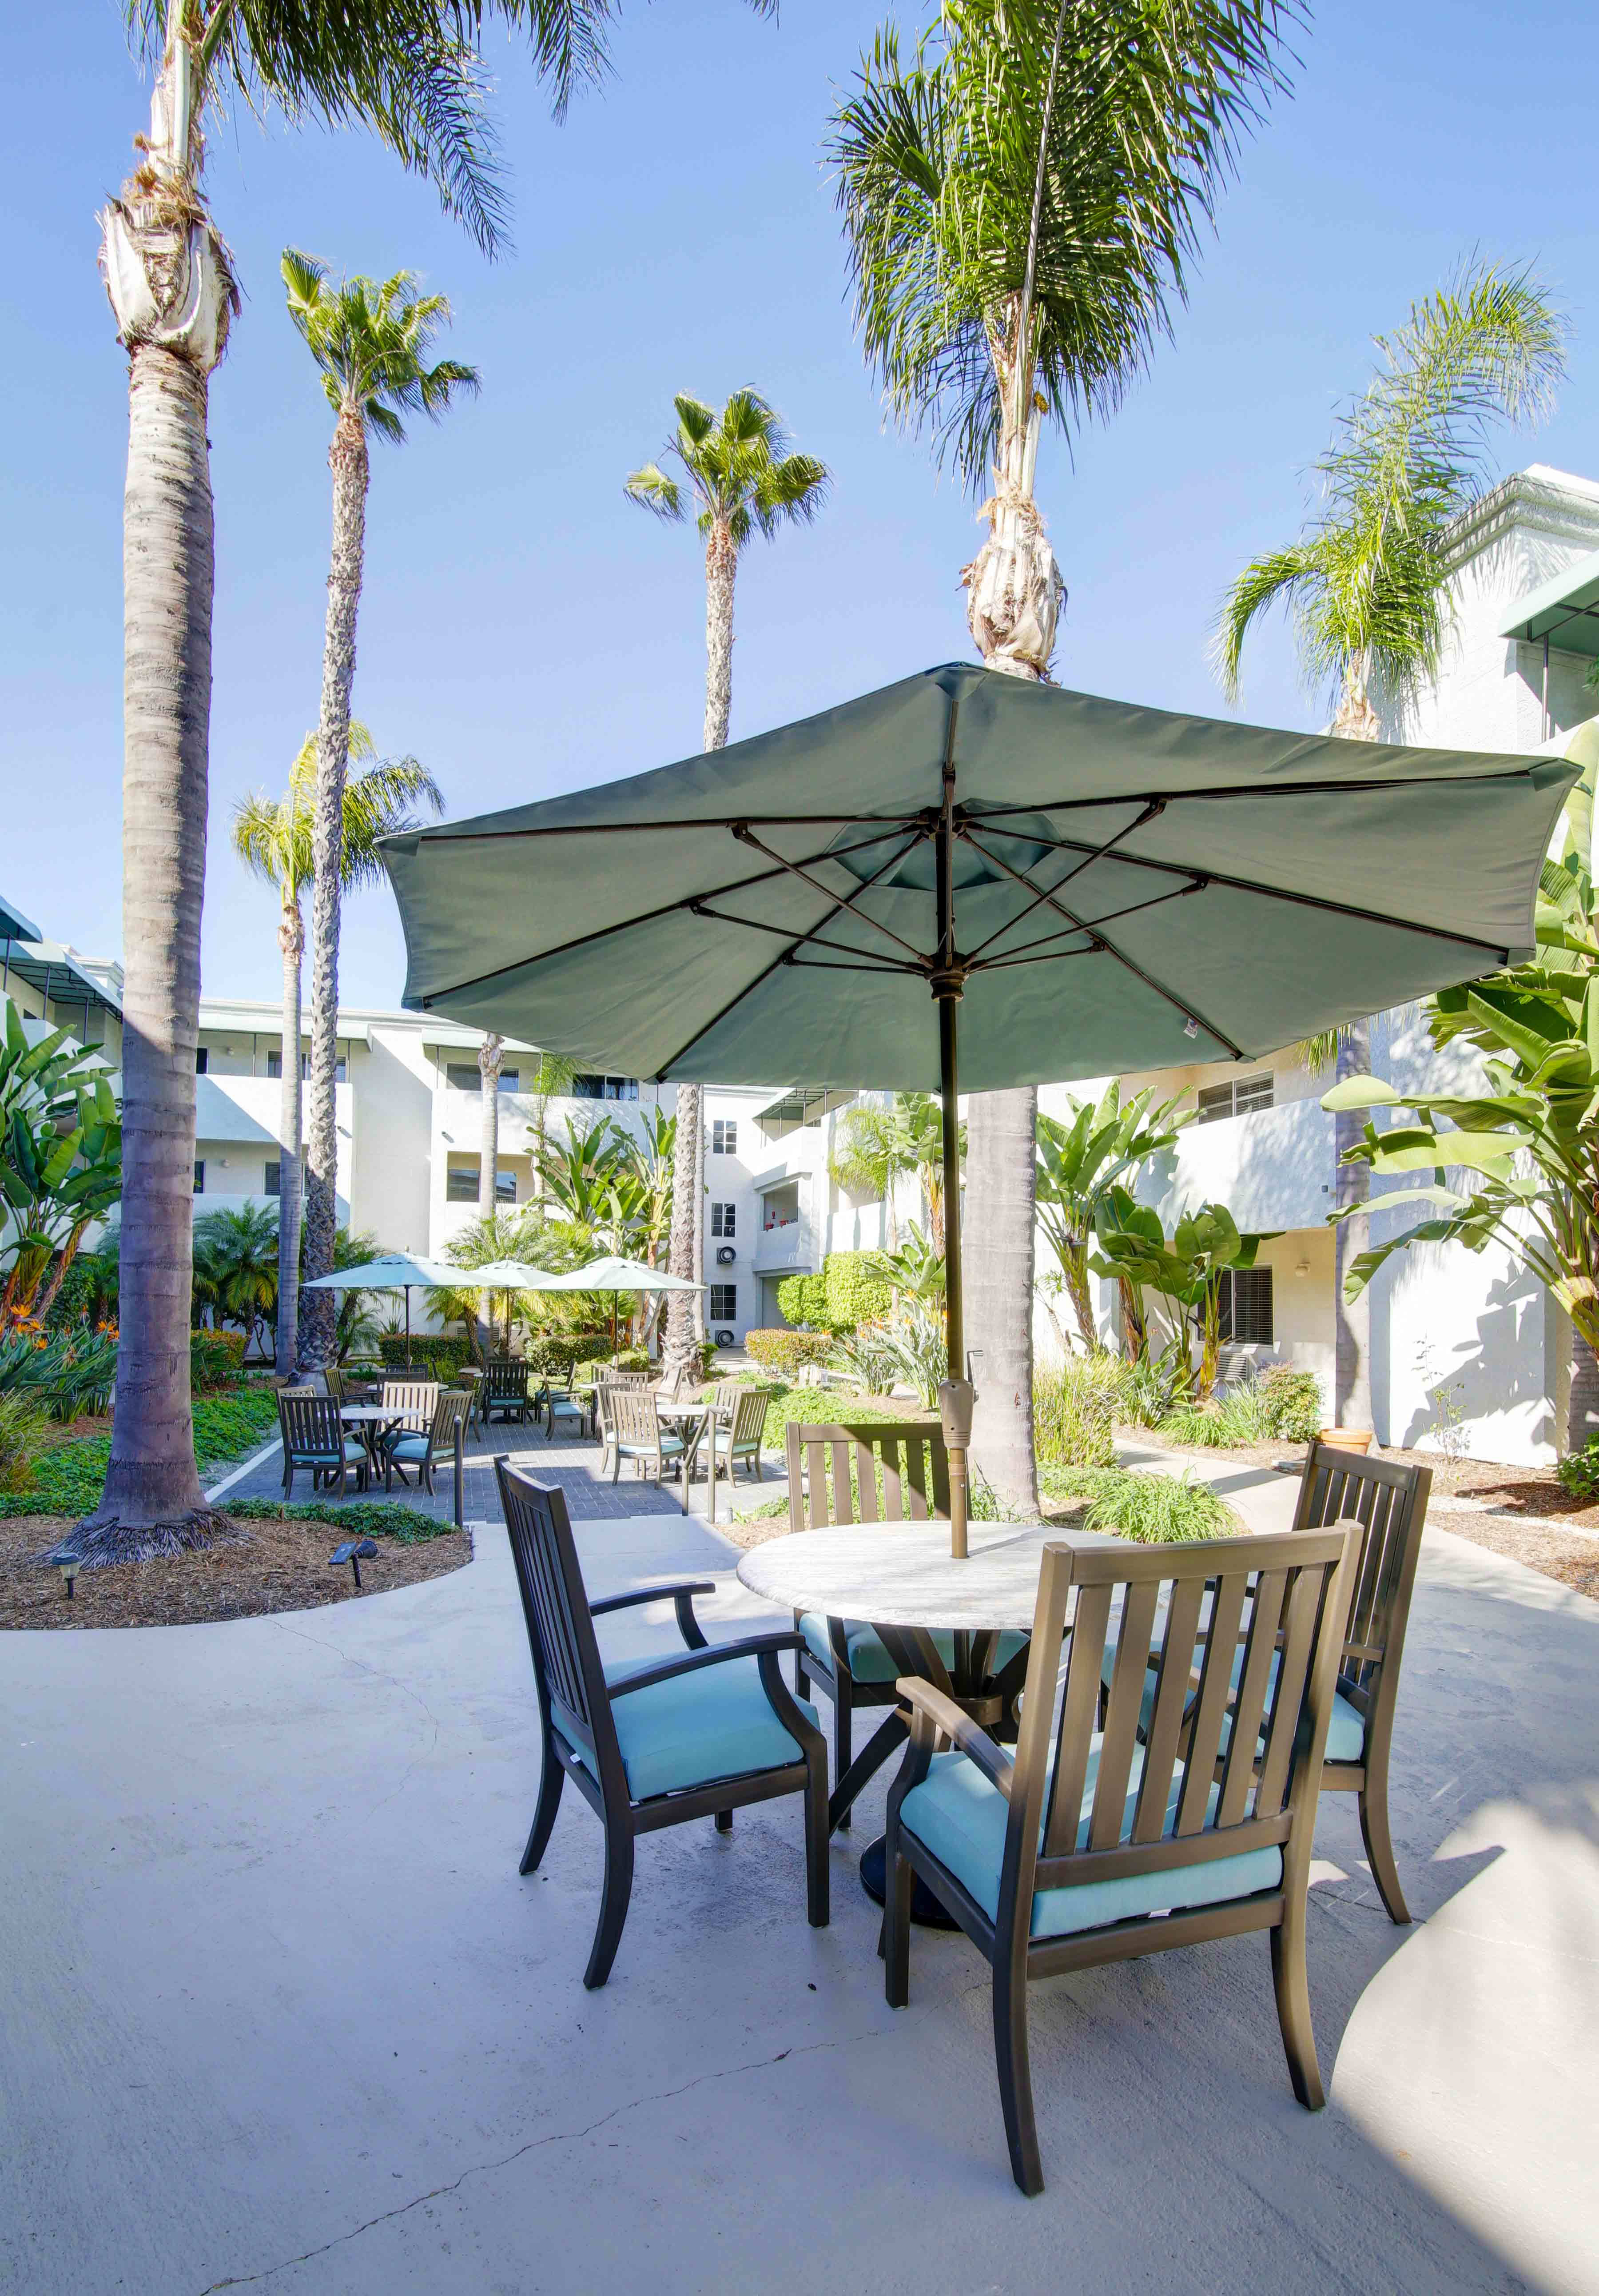 Senior living community in Costa Mesa has all the amenities that are right for you or your loved one.